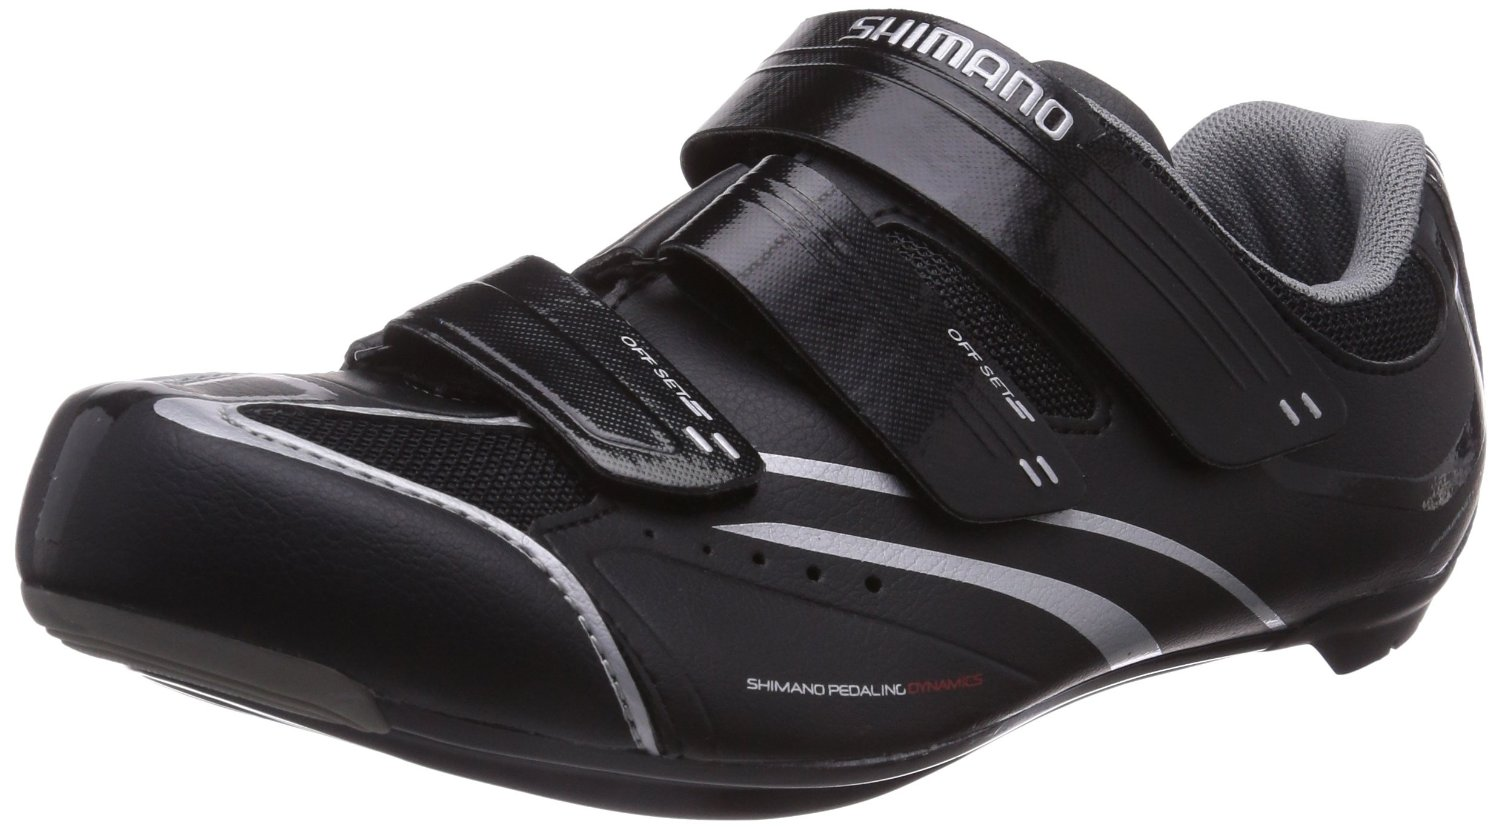 Shimano 2014 Men's All-Around Cycling Road Bike Shoes SH-R078L